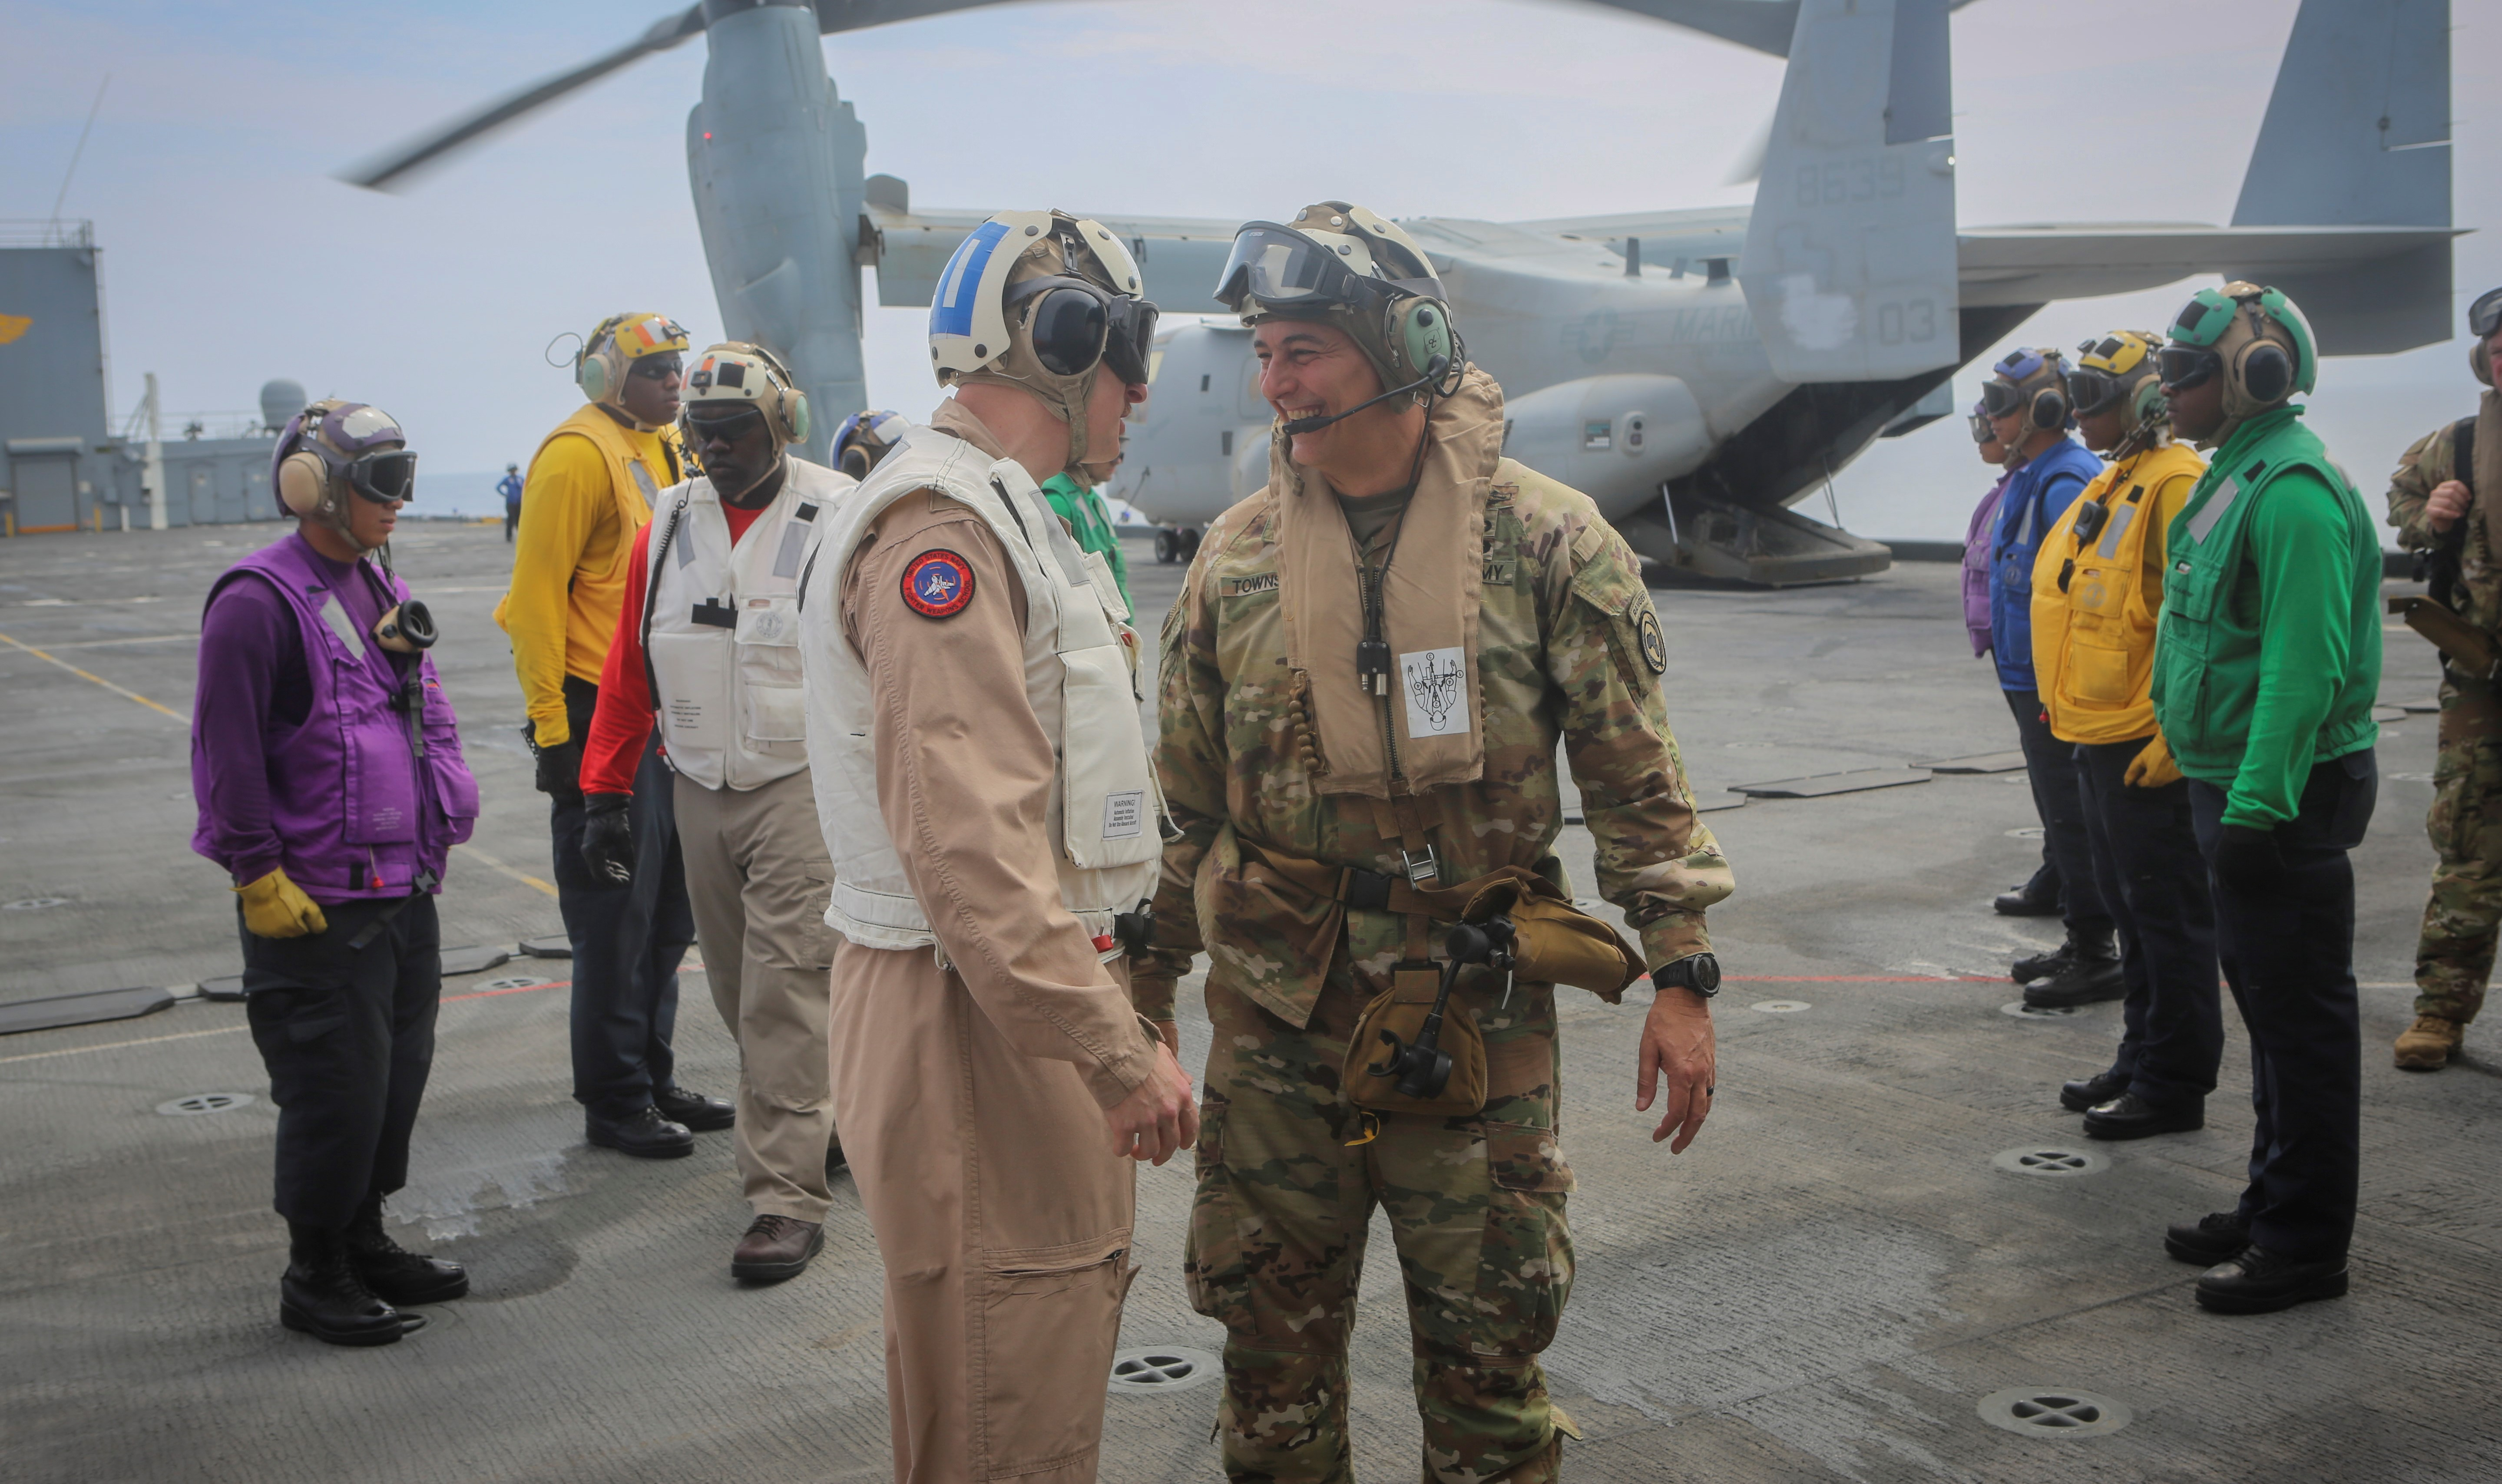 U.S. Army Gen. Stephen J. Townsend, commander, U.S. Africa Command, speaks with Capt. Colin Day, commanding officer of the Expeditionary Mobile Base USS Lewis B. Puller, as he arrives aboard the ship during exercise Cutlass Express 2019.2, Nov. 4, 2019. Cutlass Express is designed to improve regional cooperation, maritime domain awareness and information sharing practices to increase capabilities between the U.S., East African, and Western Indian Ocean nations to counter illicit maritime activity. (U.S. Navy photo by Lewis B. Puller public affairs)